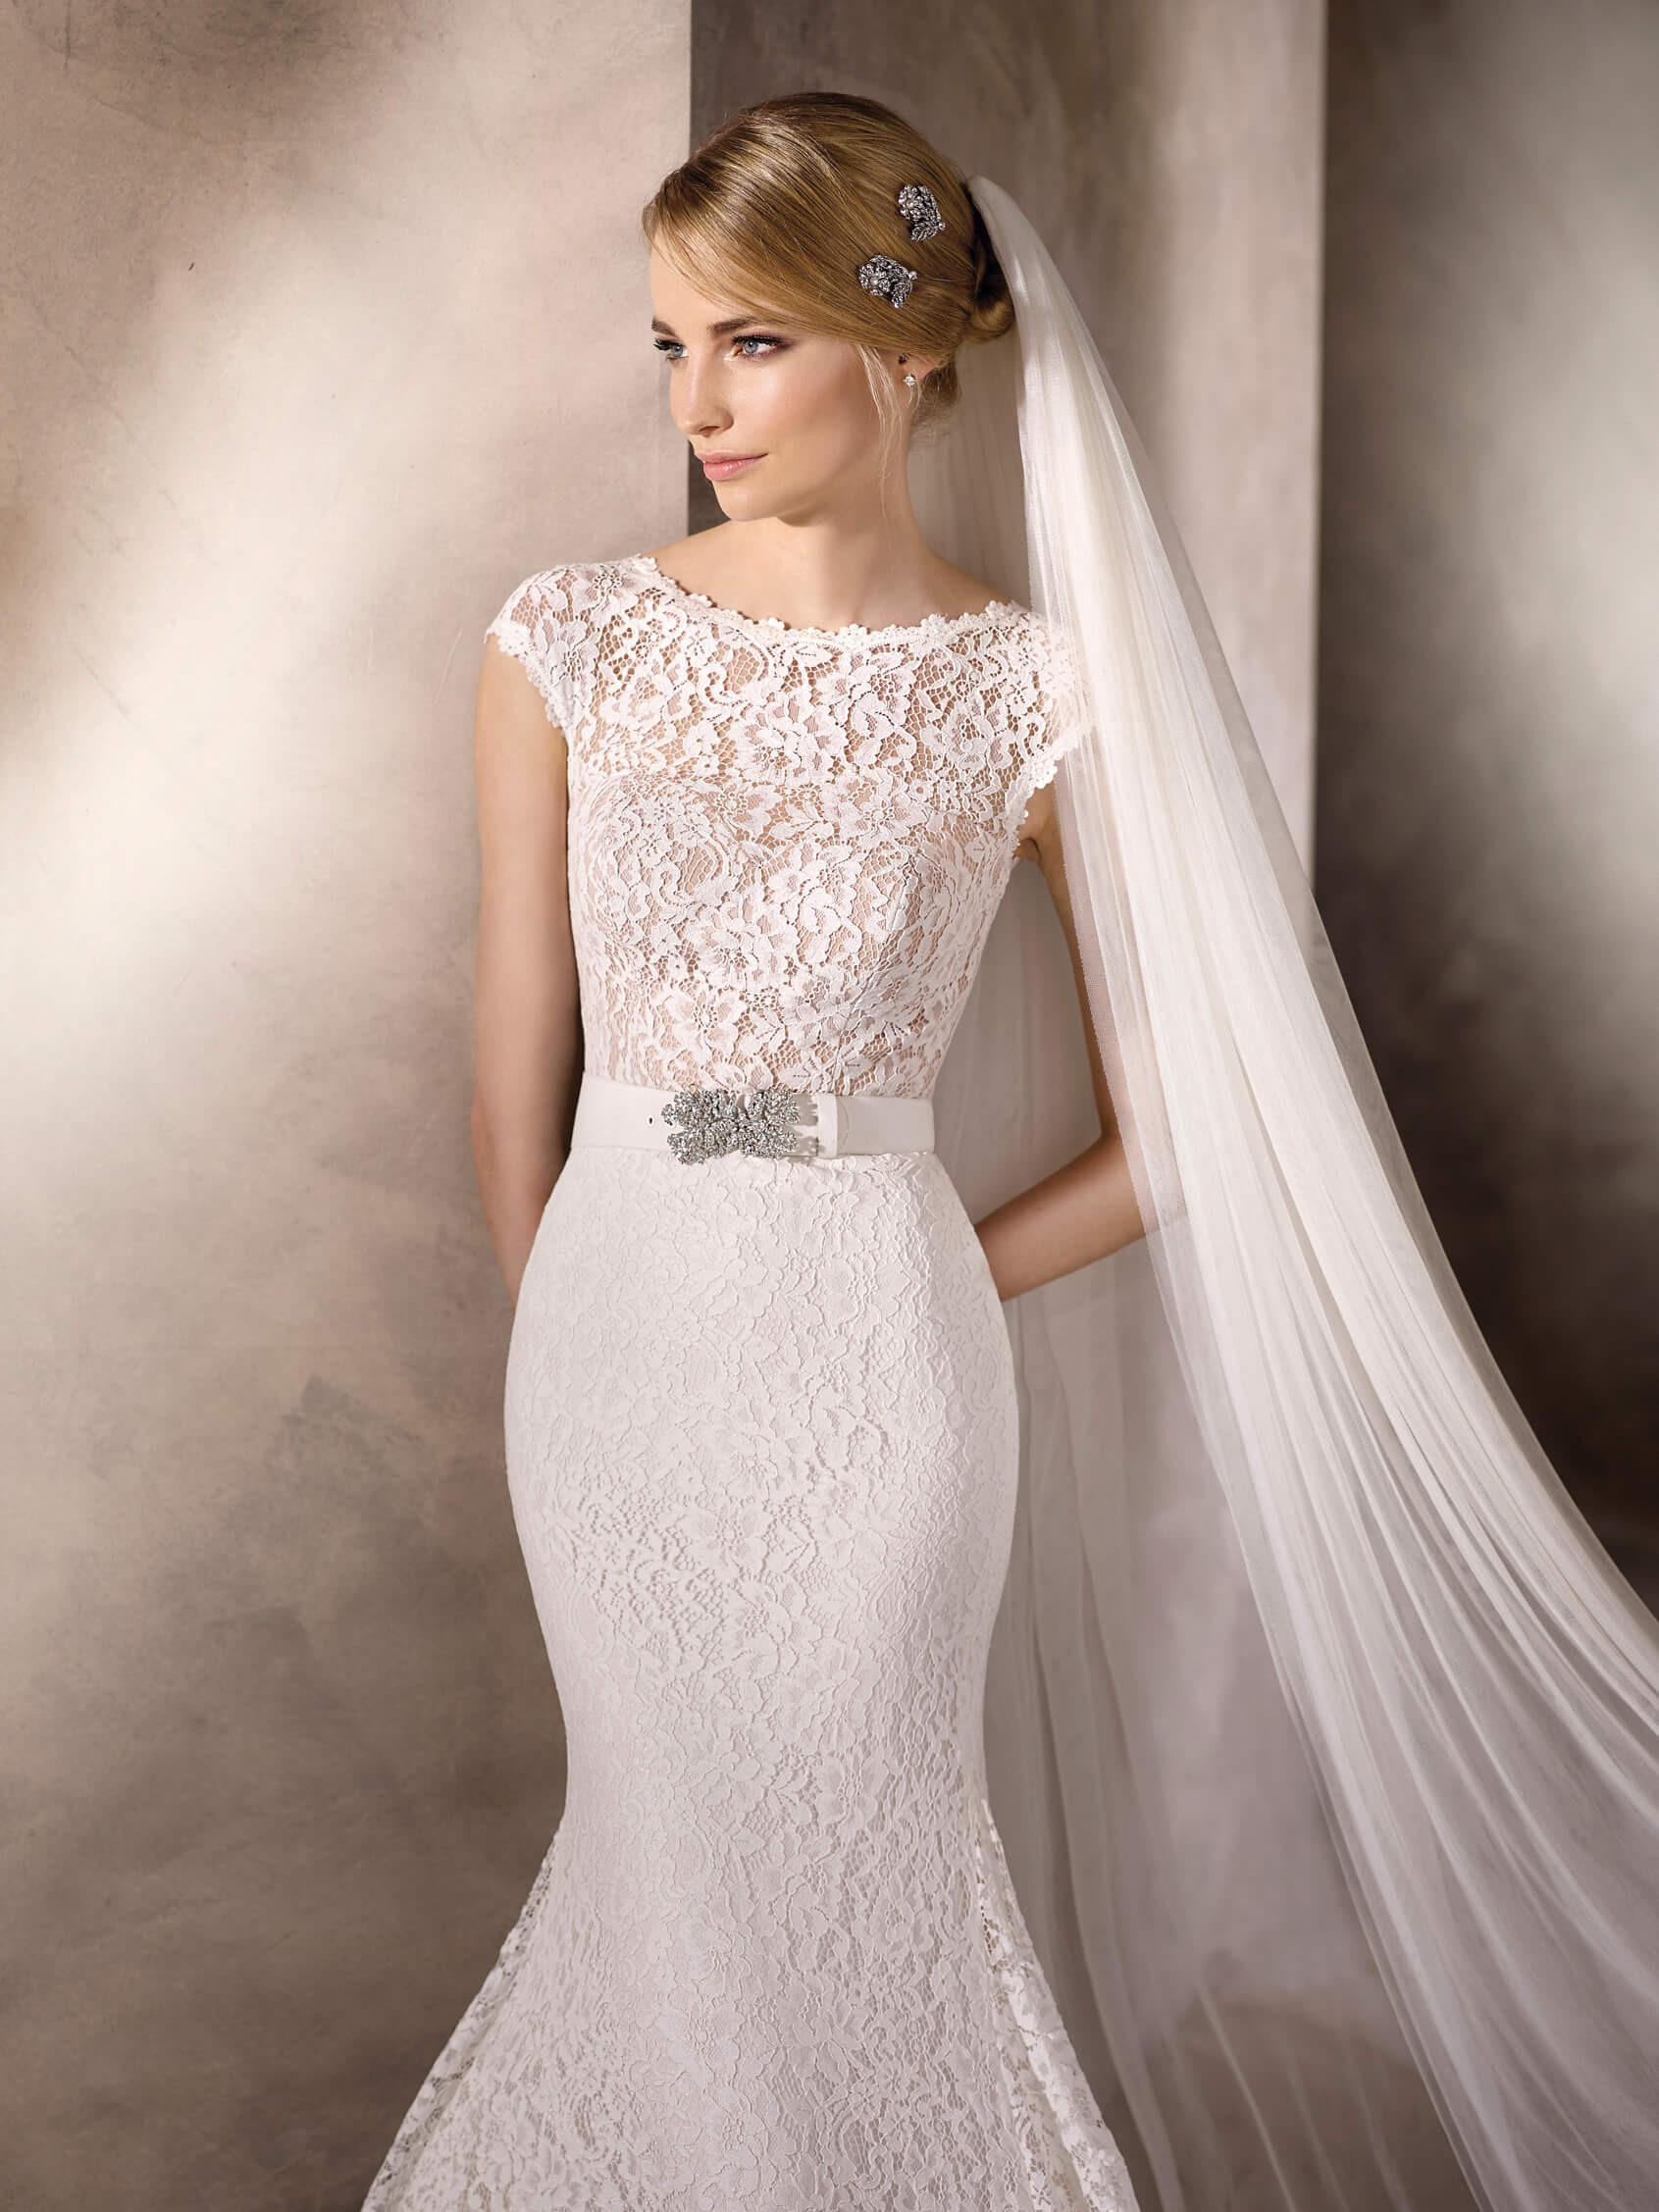 3bd1250d3b72 Sophisticated mermaid wedding dress with bateau neckline in lace. It can  also be teamed with a si.